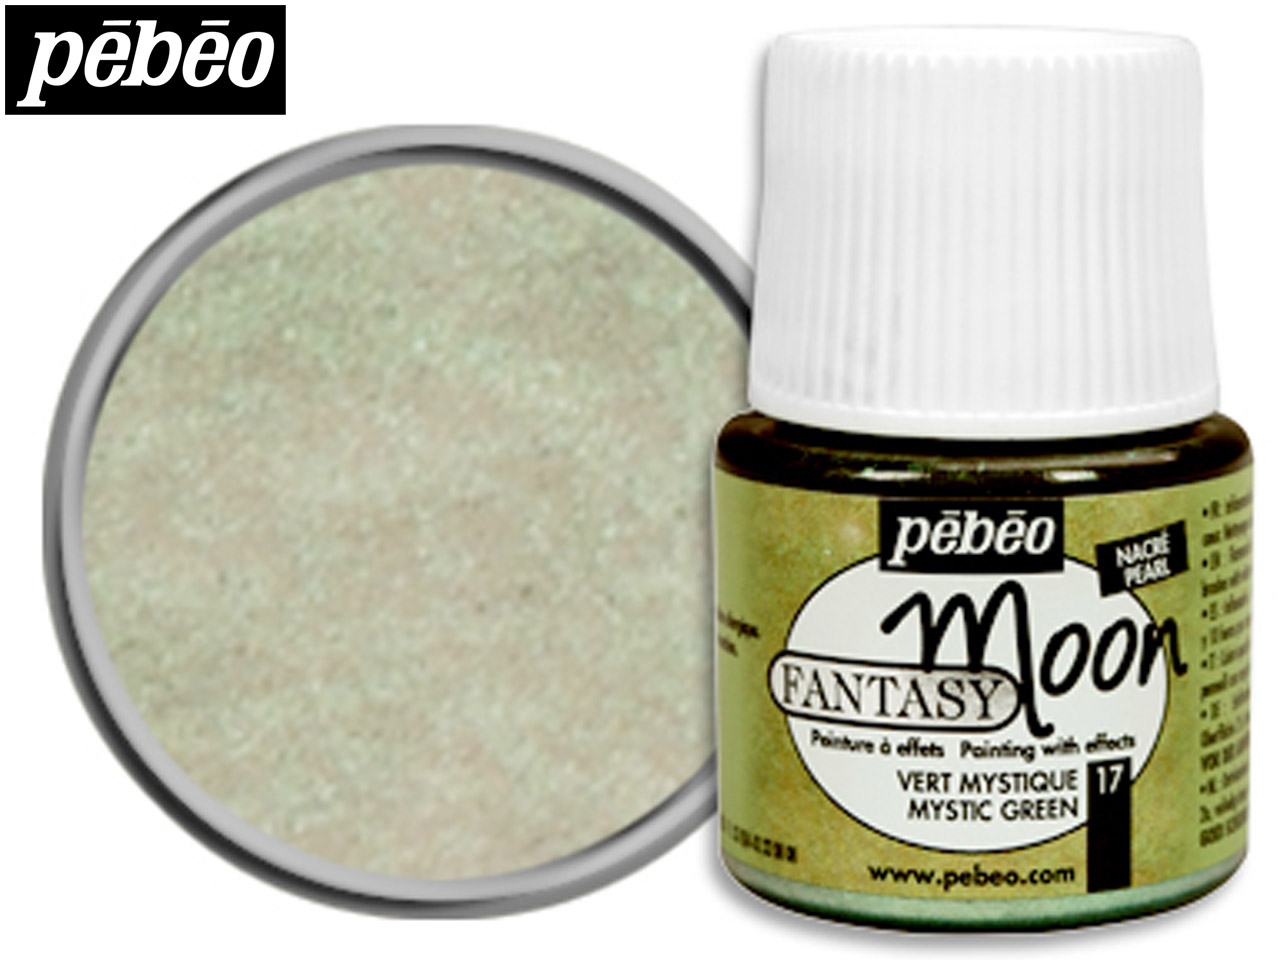 Pebeo Fantasy Moon, Mystic Green,  45ml Un1263